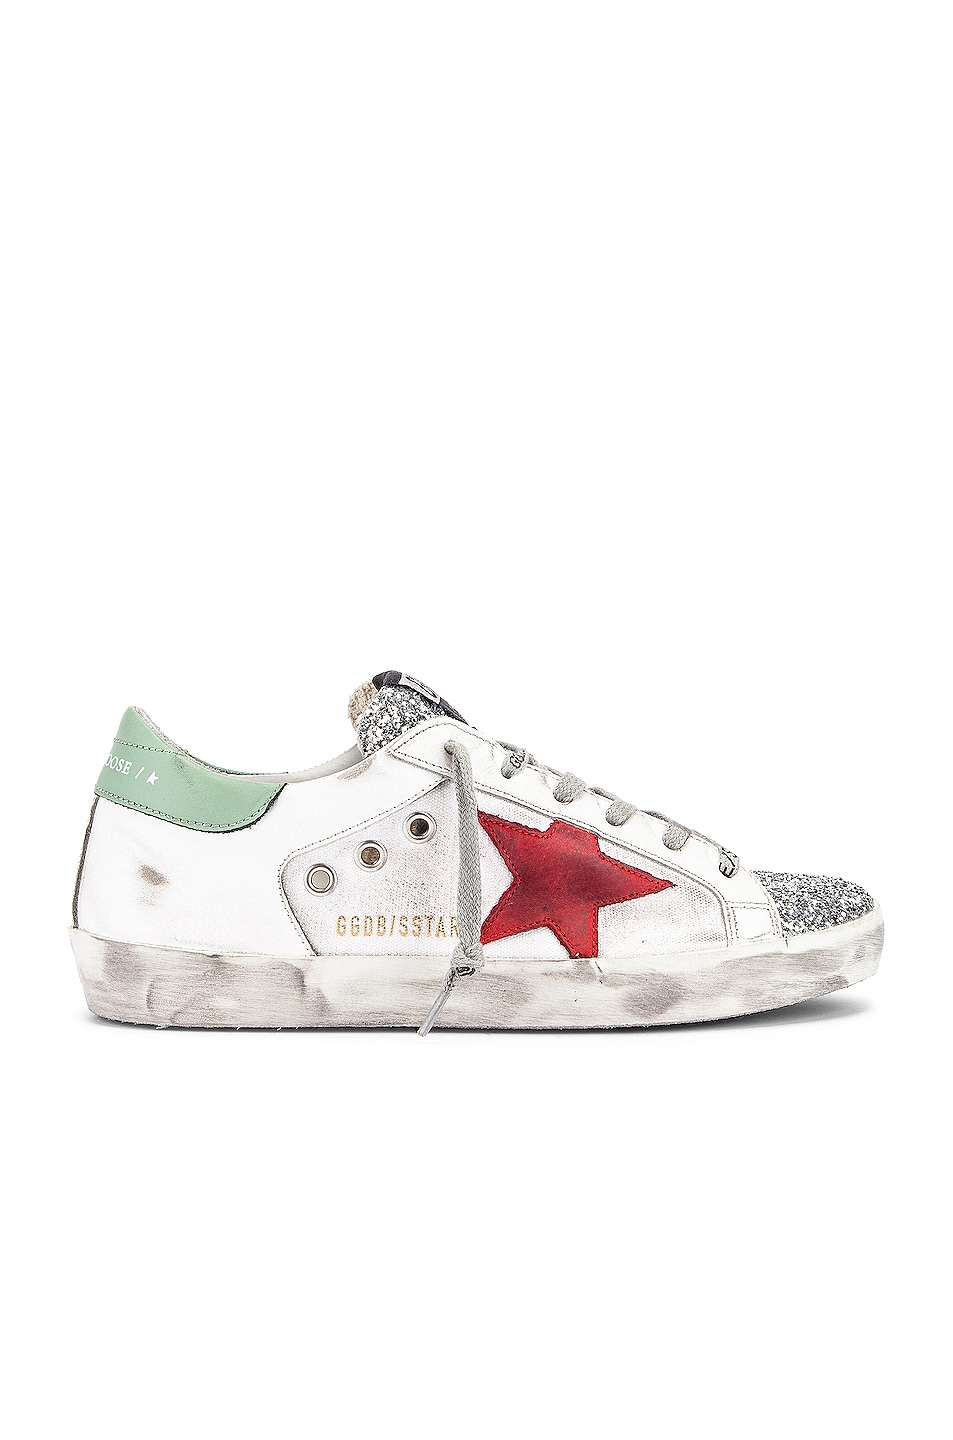 Image 1 of Golden Goose Superstar Sneaker in White Leather, Silver Glitter & Red